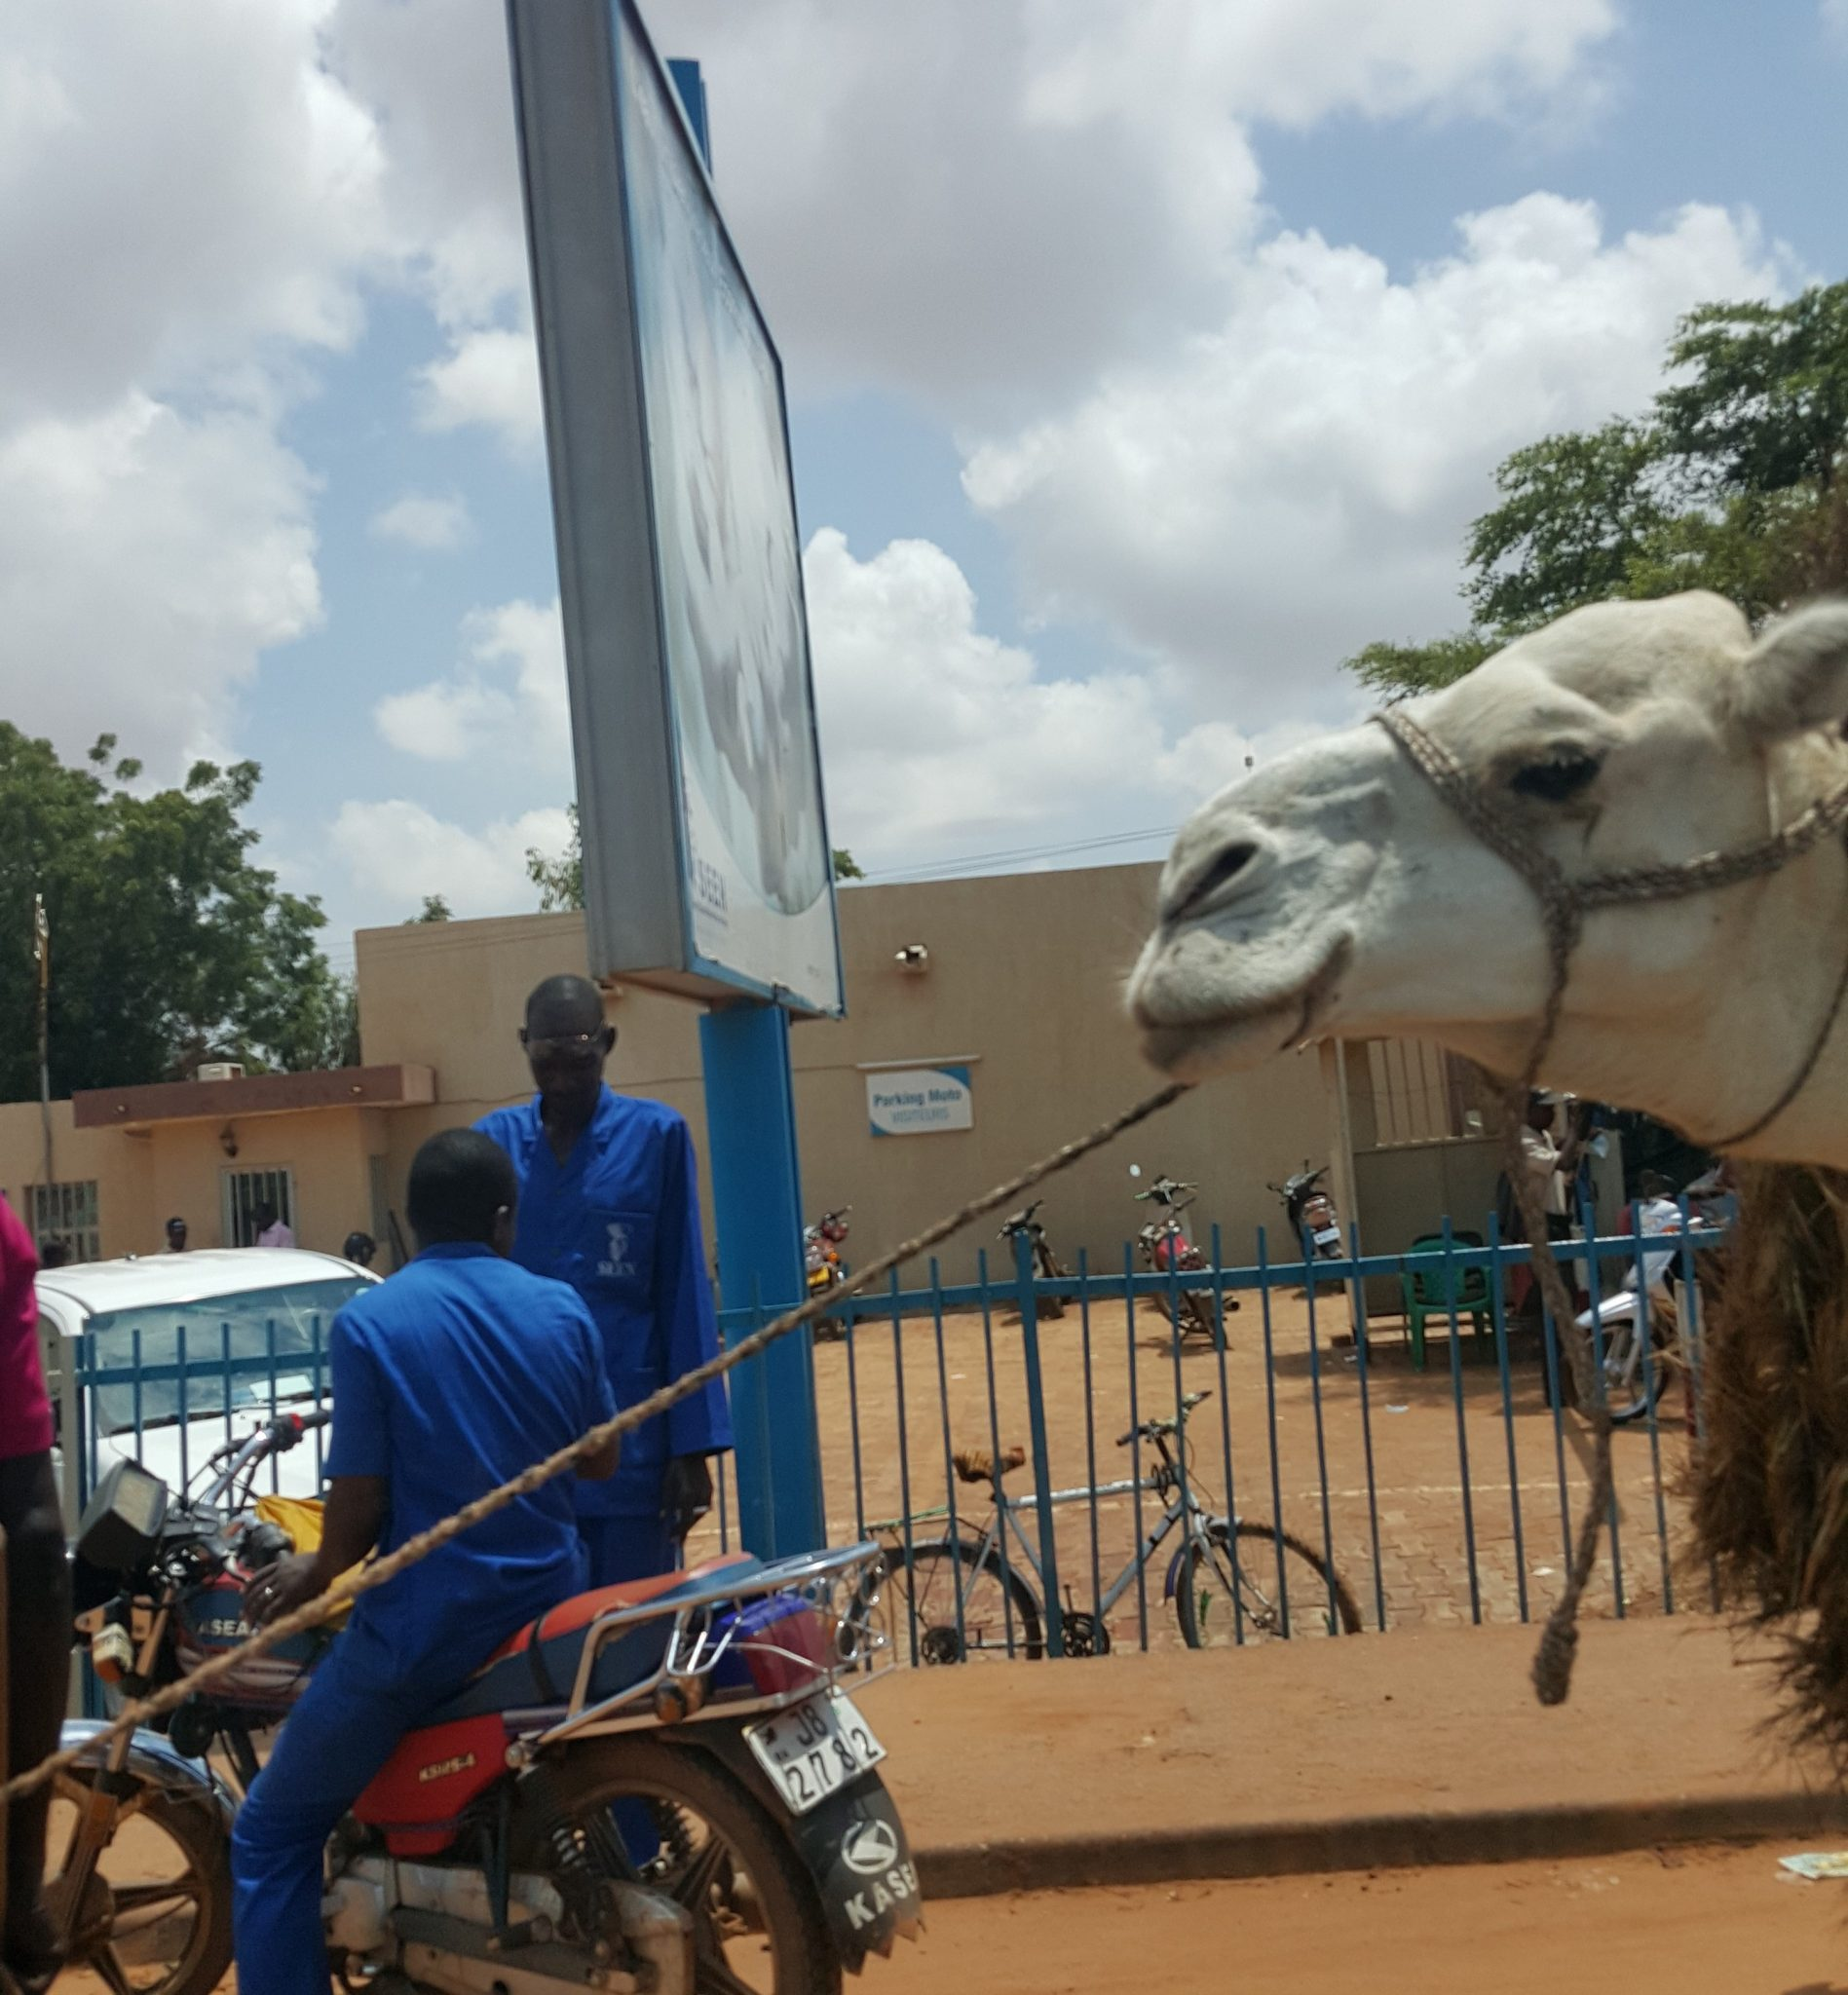 Camel on the street used to convey goods.